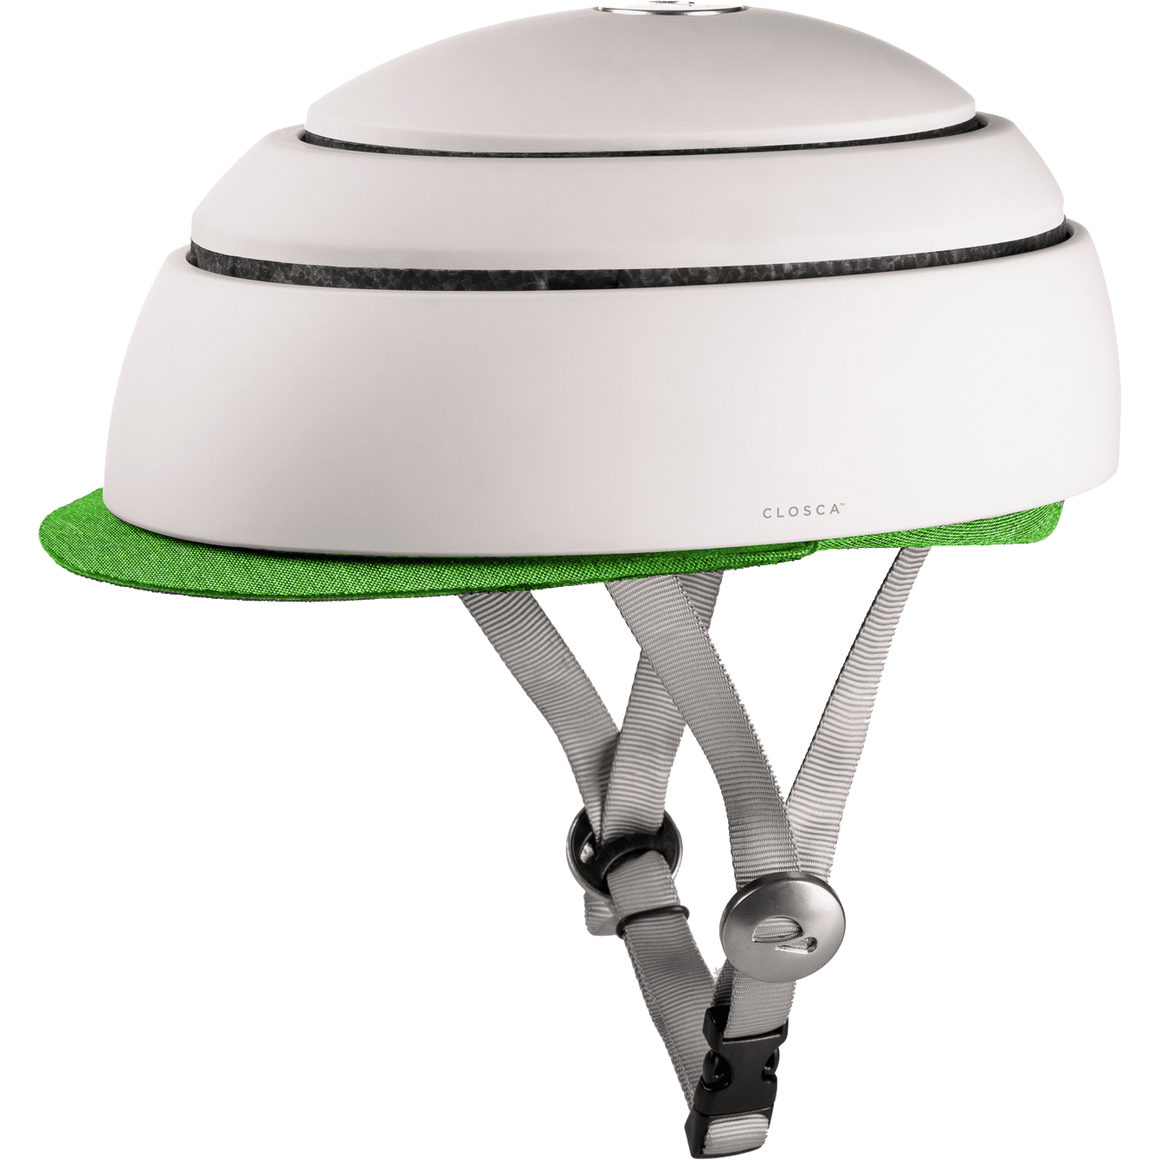 Closca Fuga - Kids Bike Helmet - Green - M - Helmet - Bmini | Design for Kids